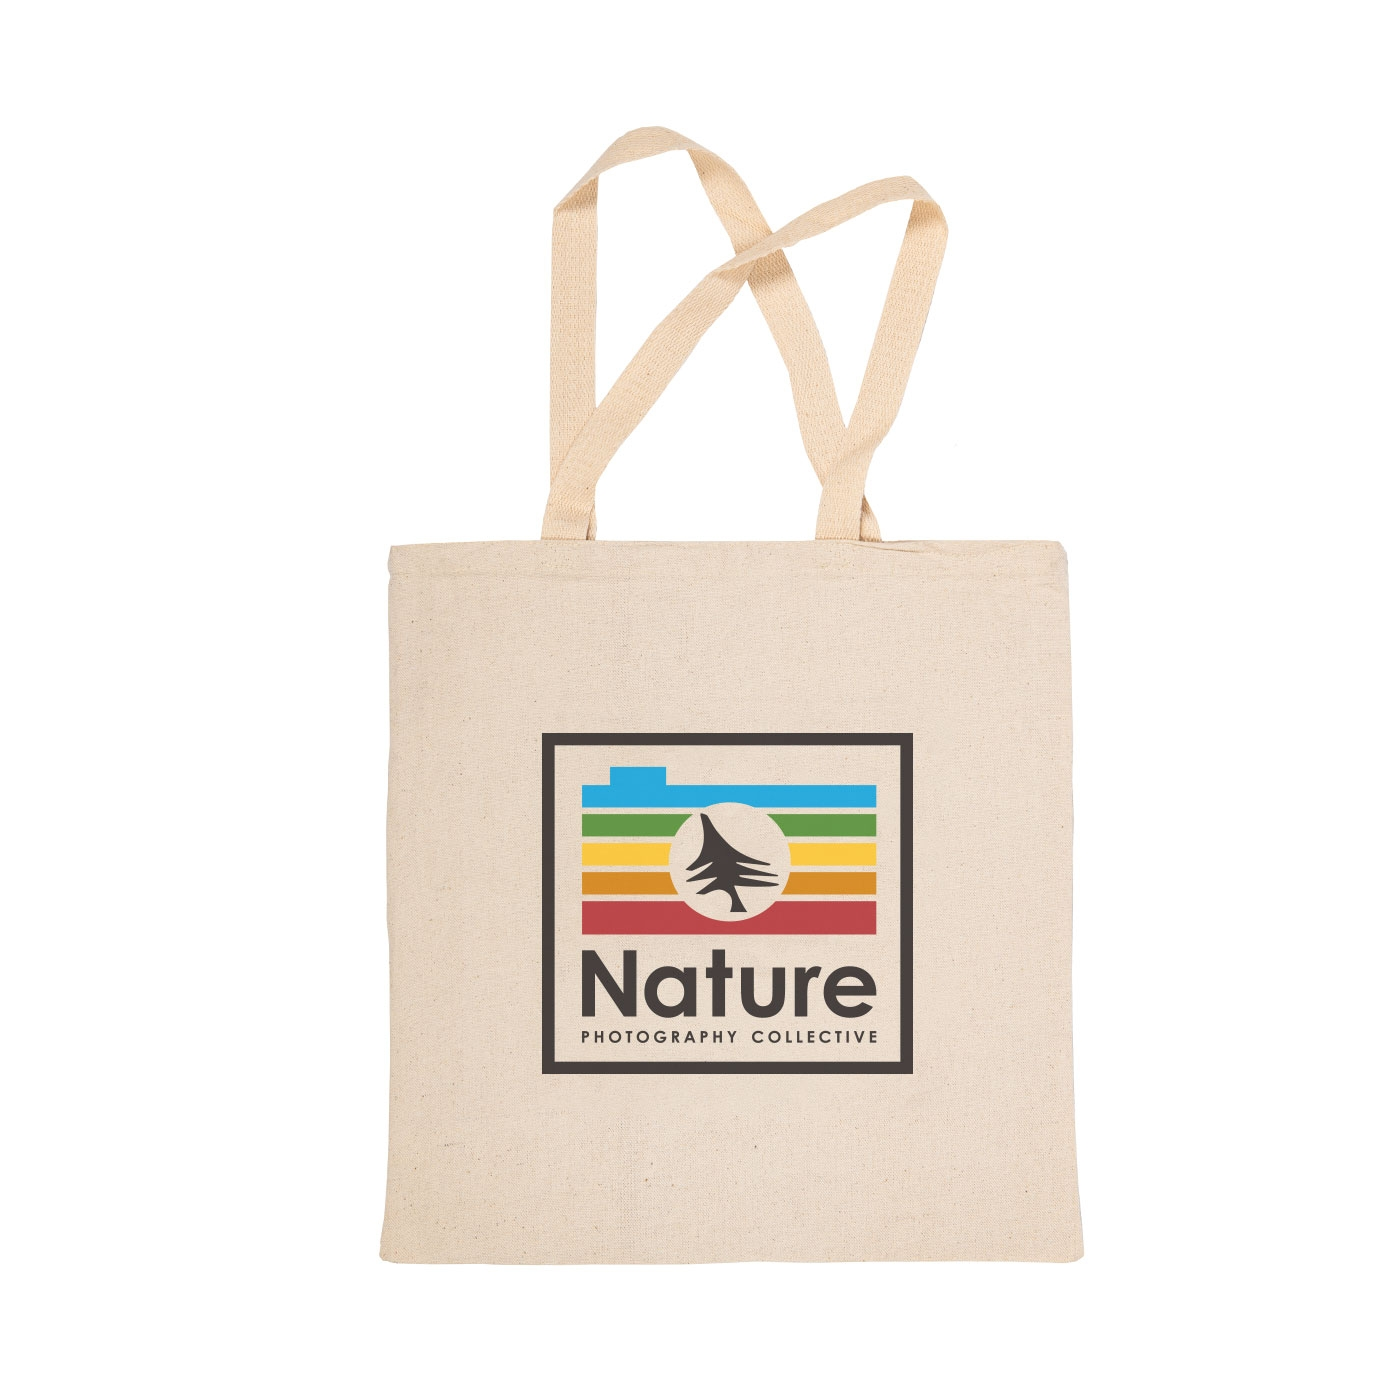 #52Weeksofnature Week 4 Tote